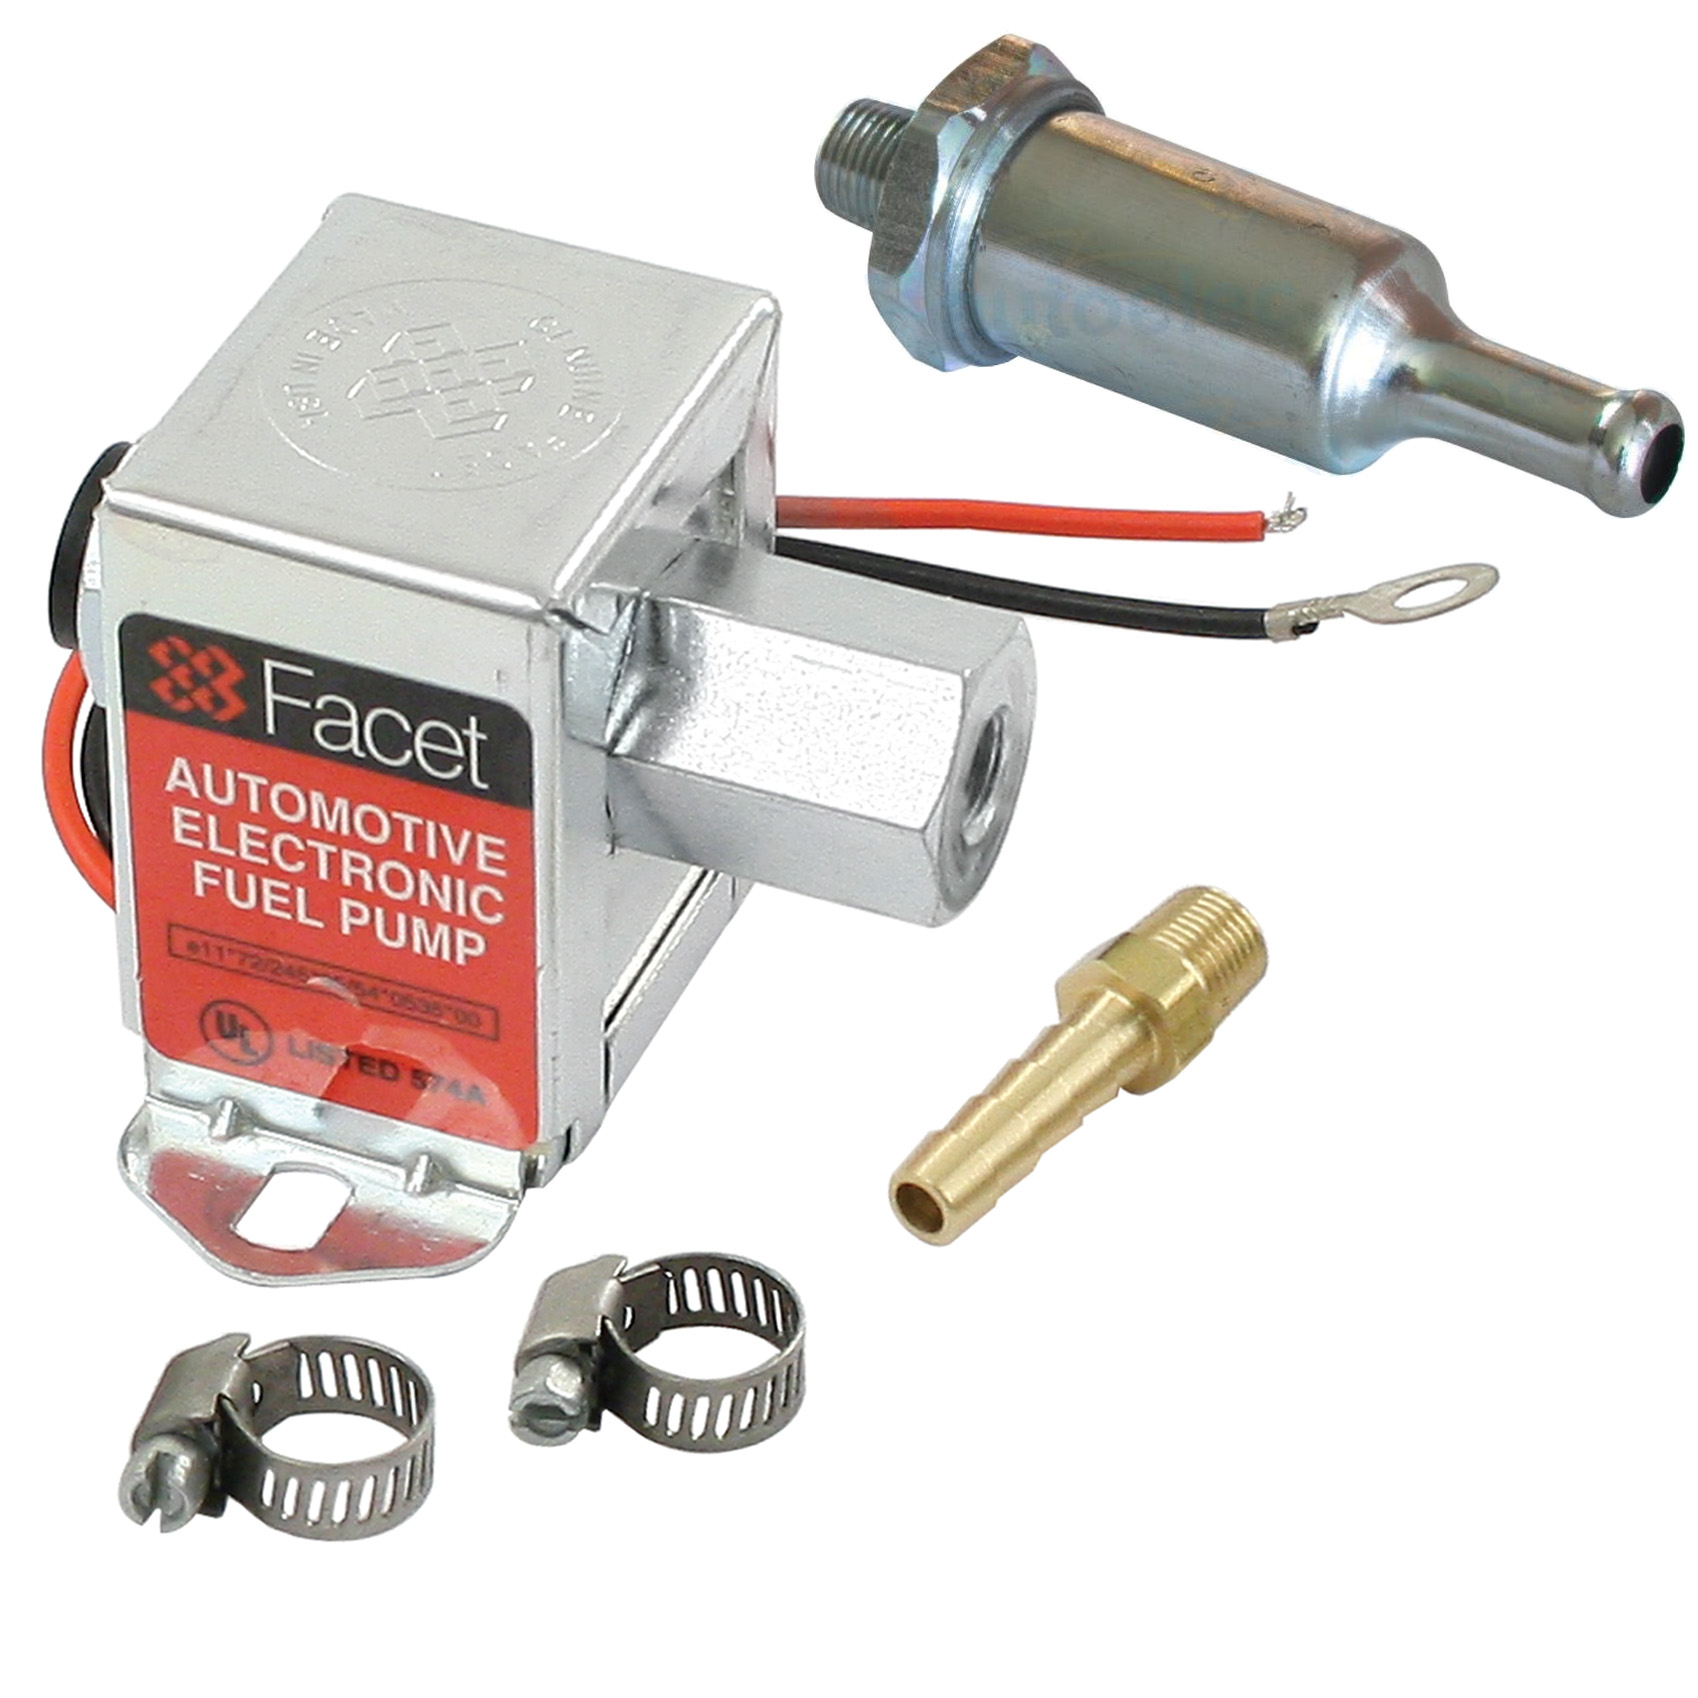 Facet Fep42sv Cube Electric Fuel Pump 15 4 Psi Includes Clamps Filter Fittings